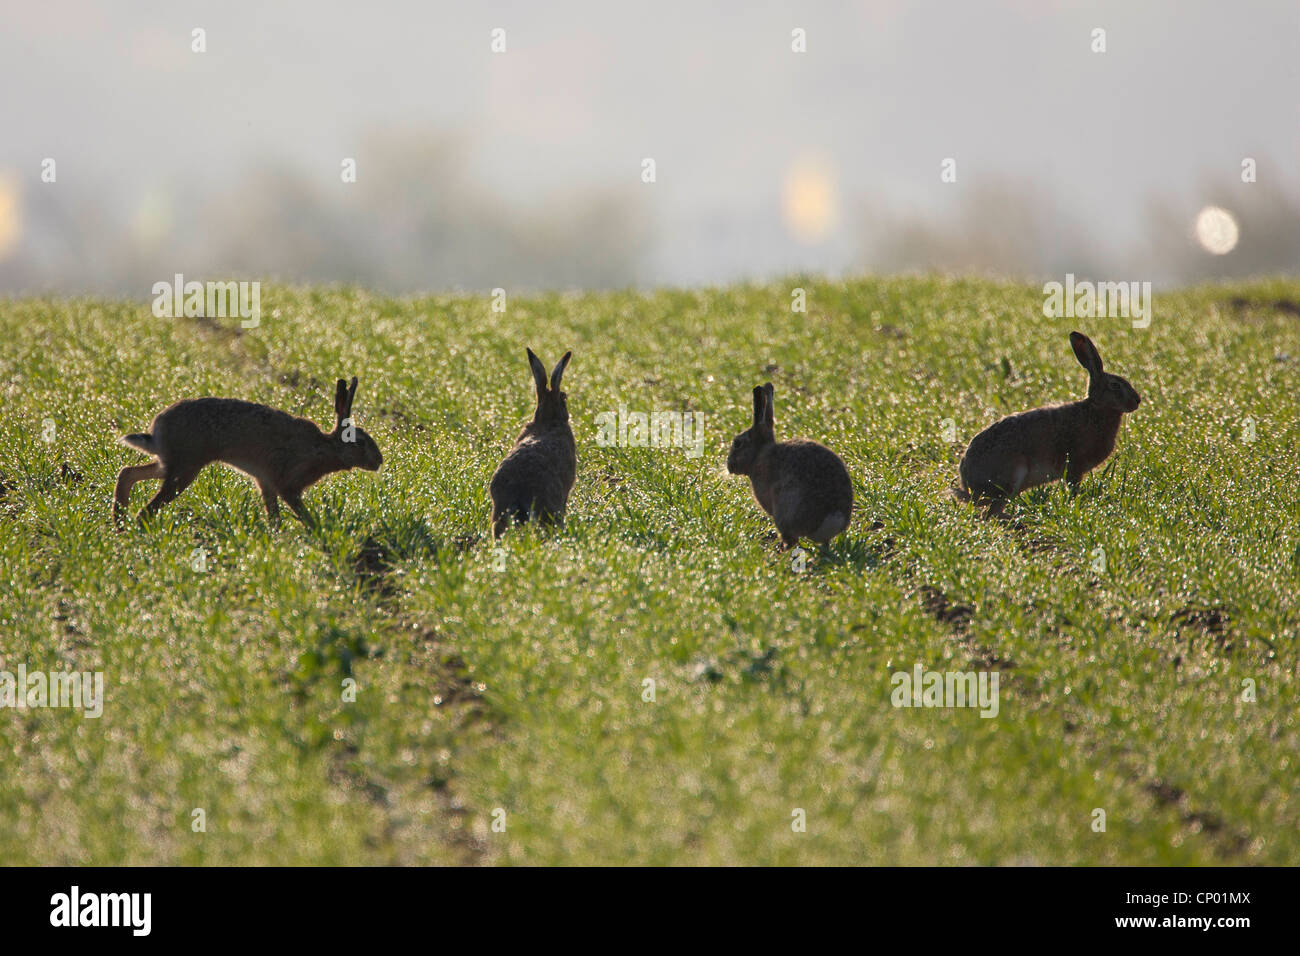 European hare (Lepus europaeus), four animals jumping in a meadow, Germany, Baden-Wuerttemberg - Stock Image